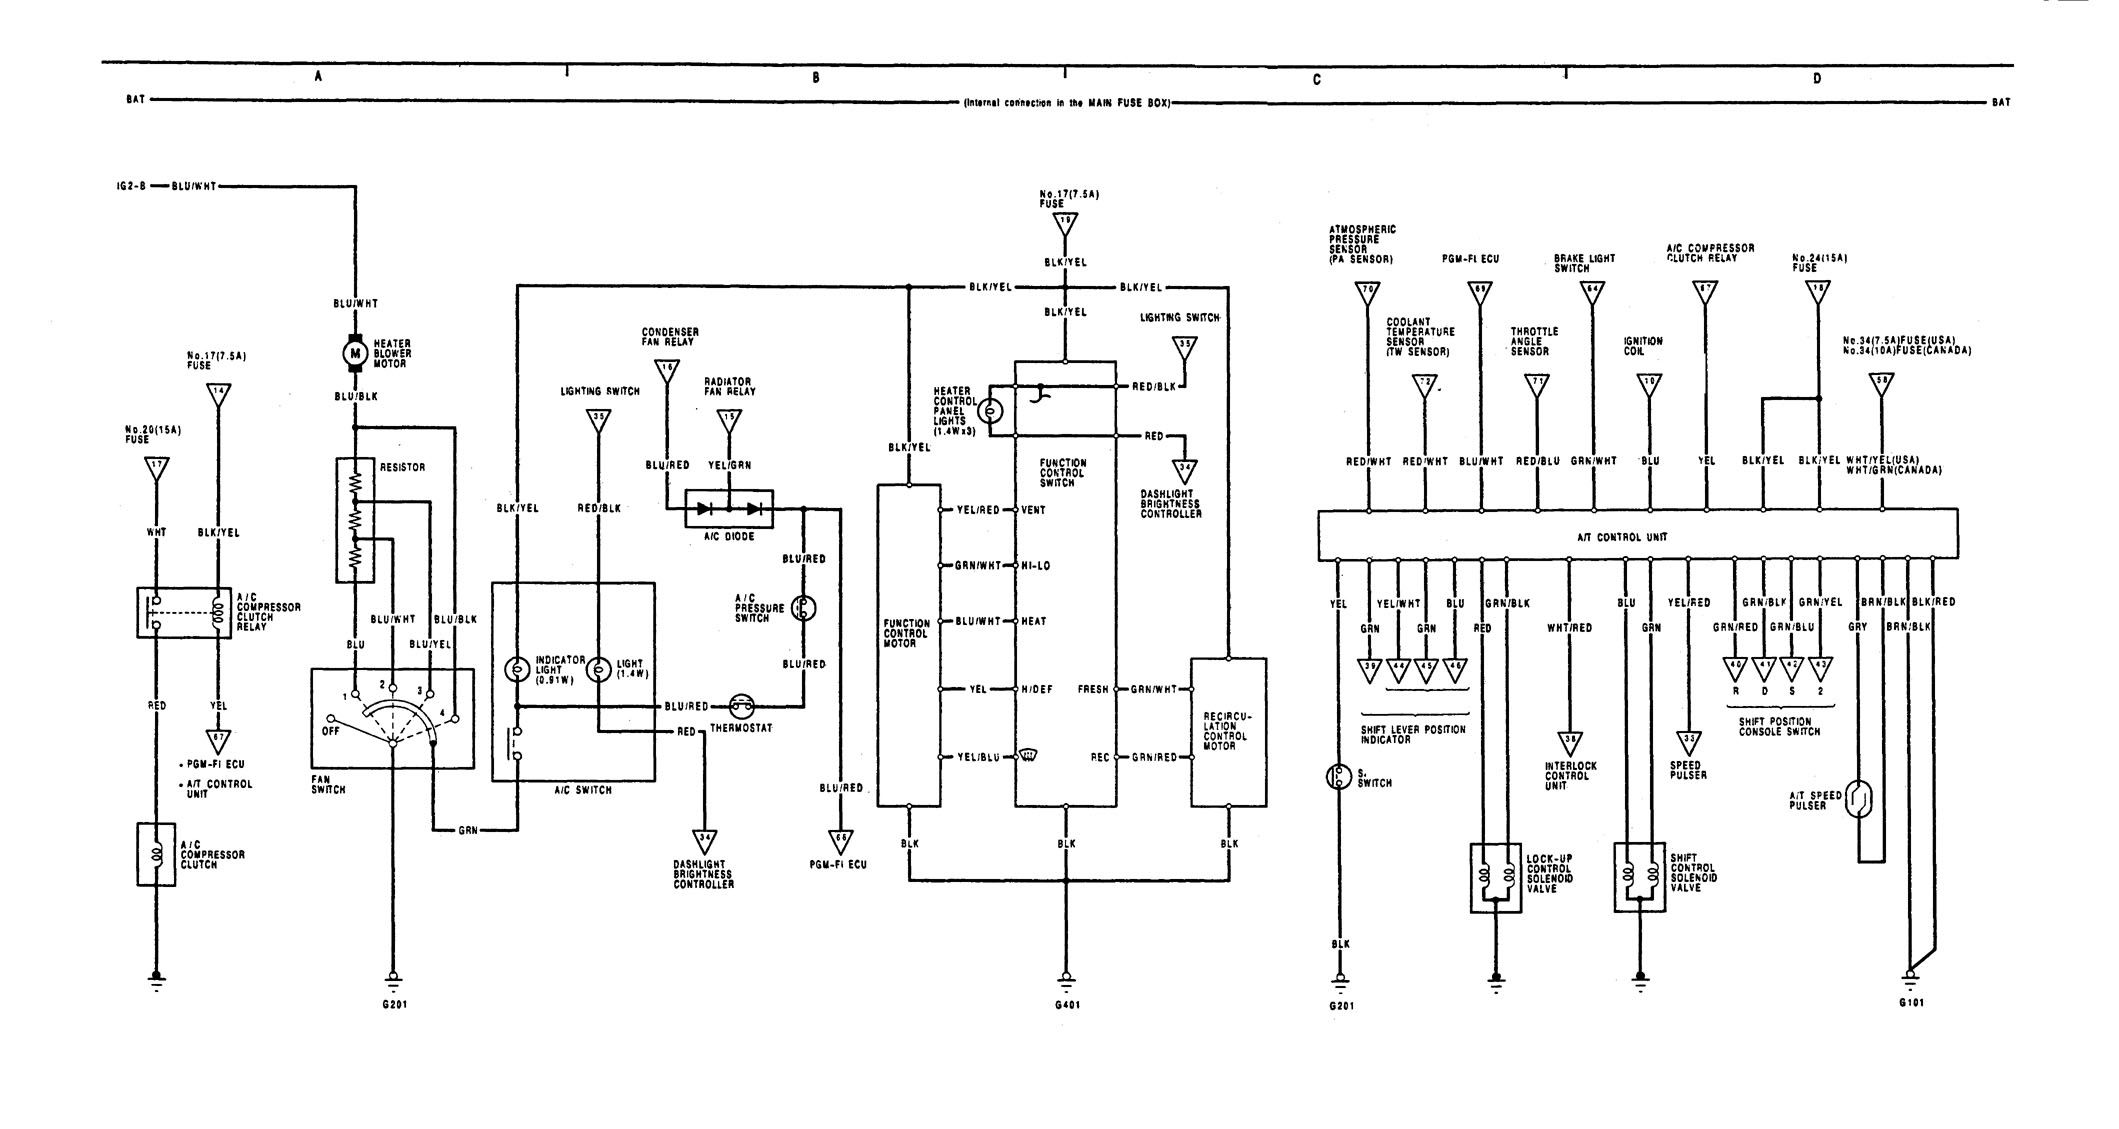 1991 acura integra wiring diagram 93 acura integra wiring diagram acura integra (1991) - wiring diagrams - transmission ...